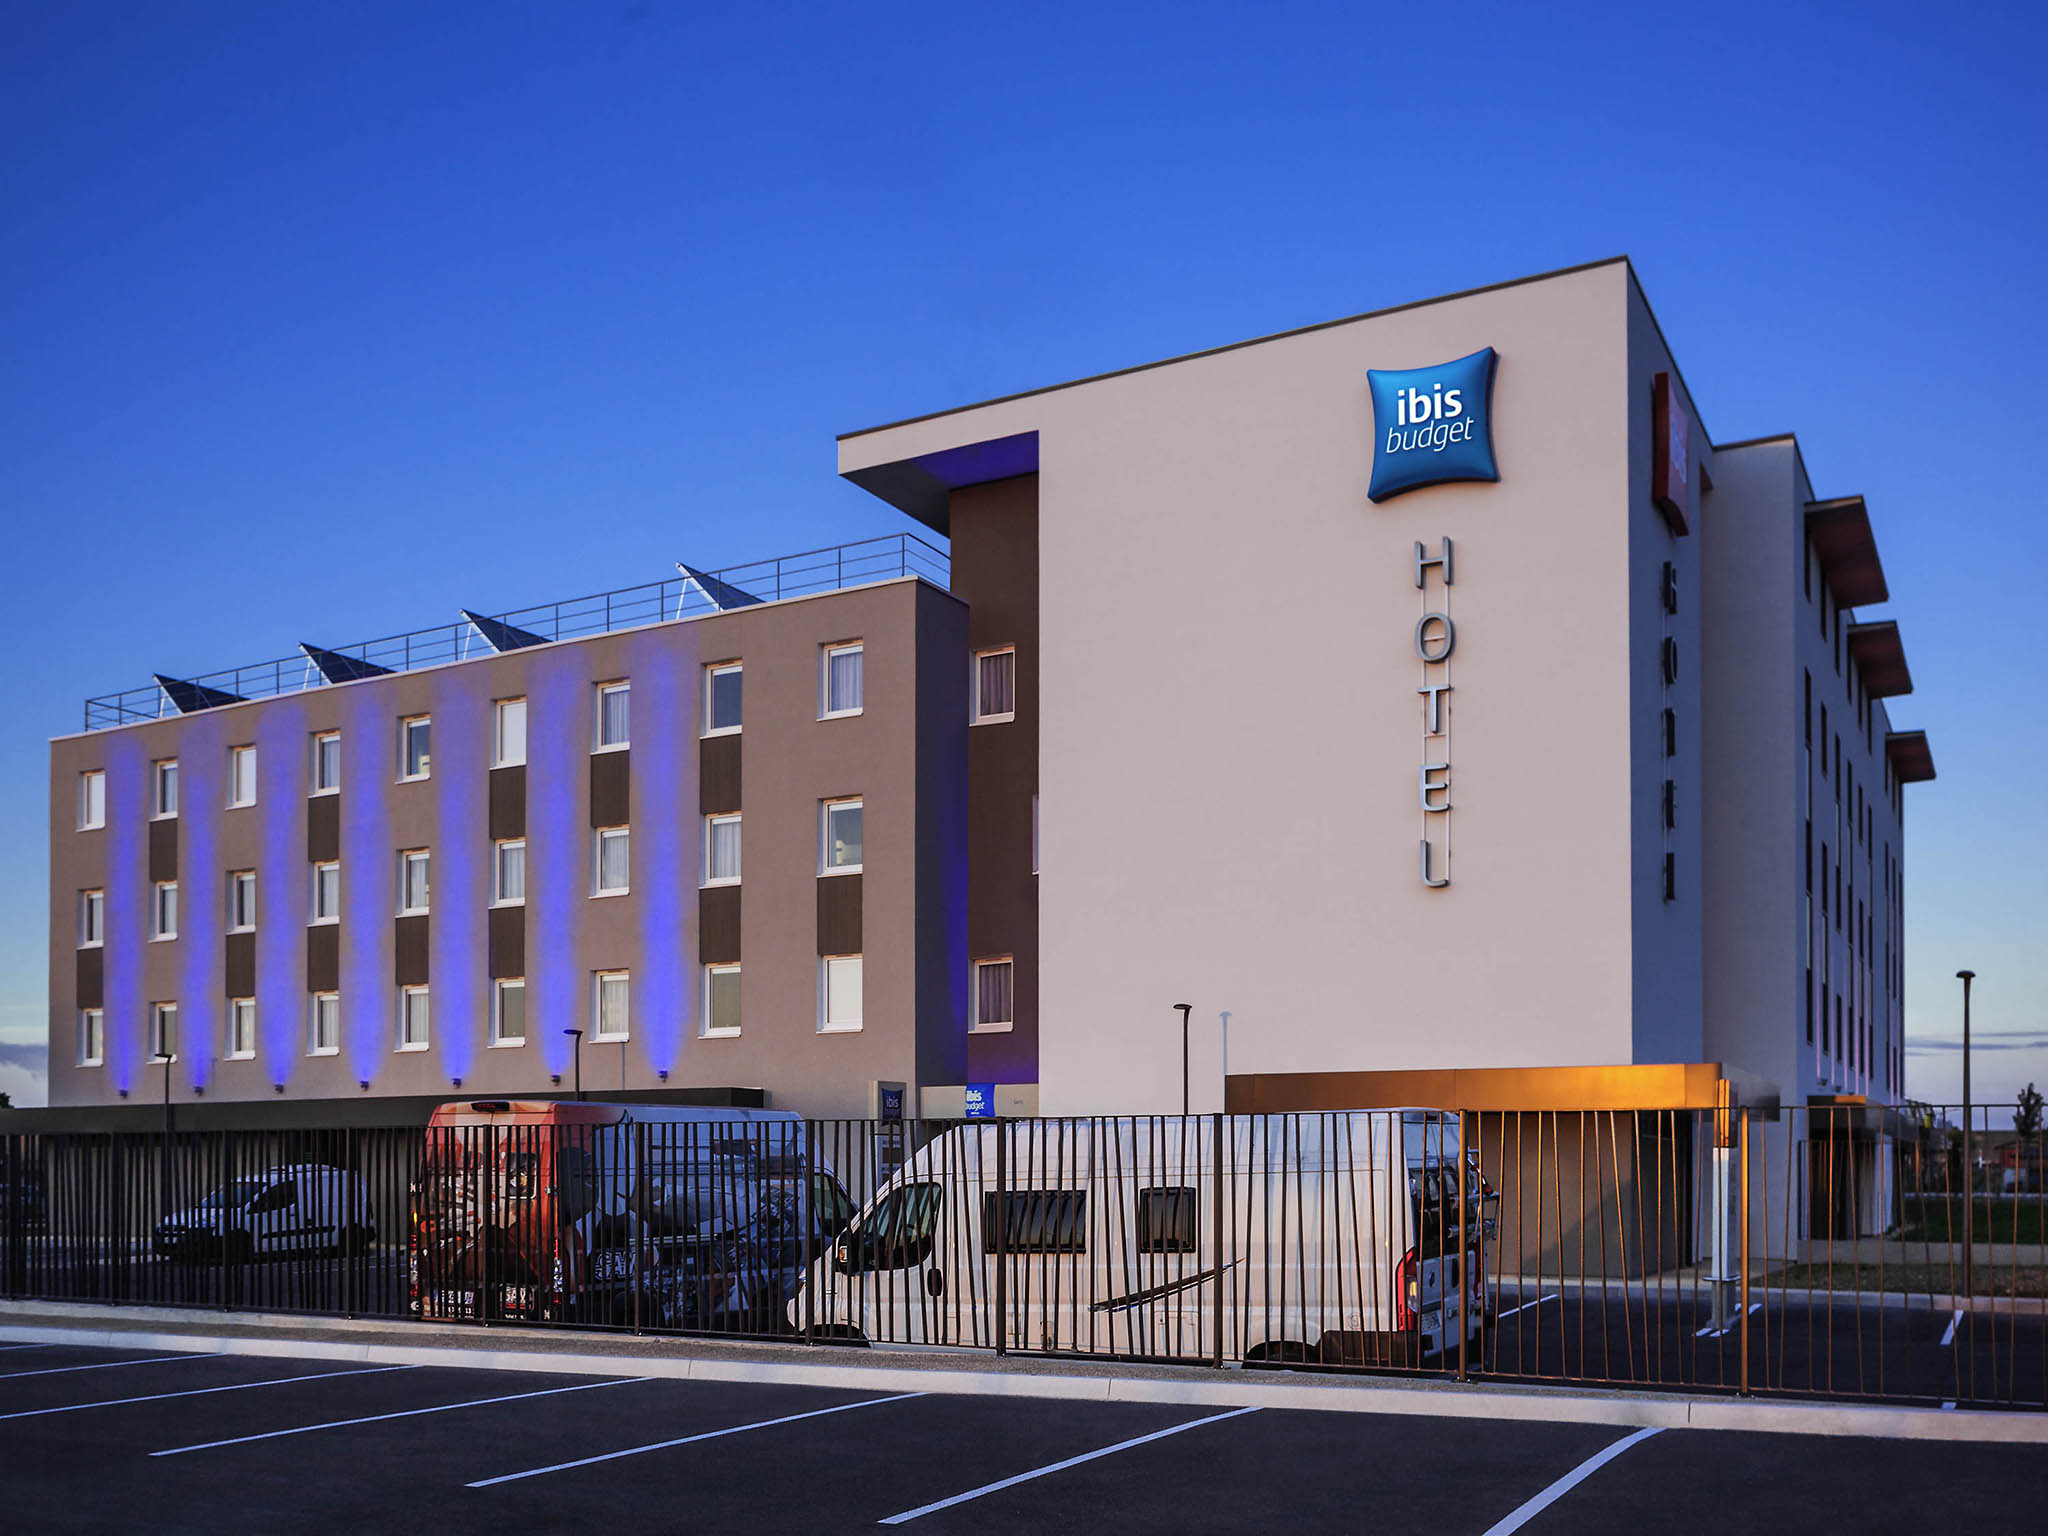 Hotel in sens ibis budget sens for Hotels ibis france